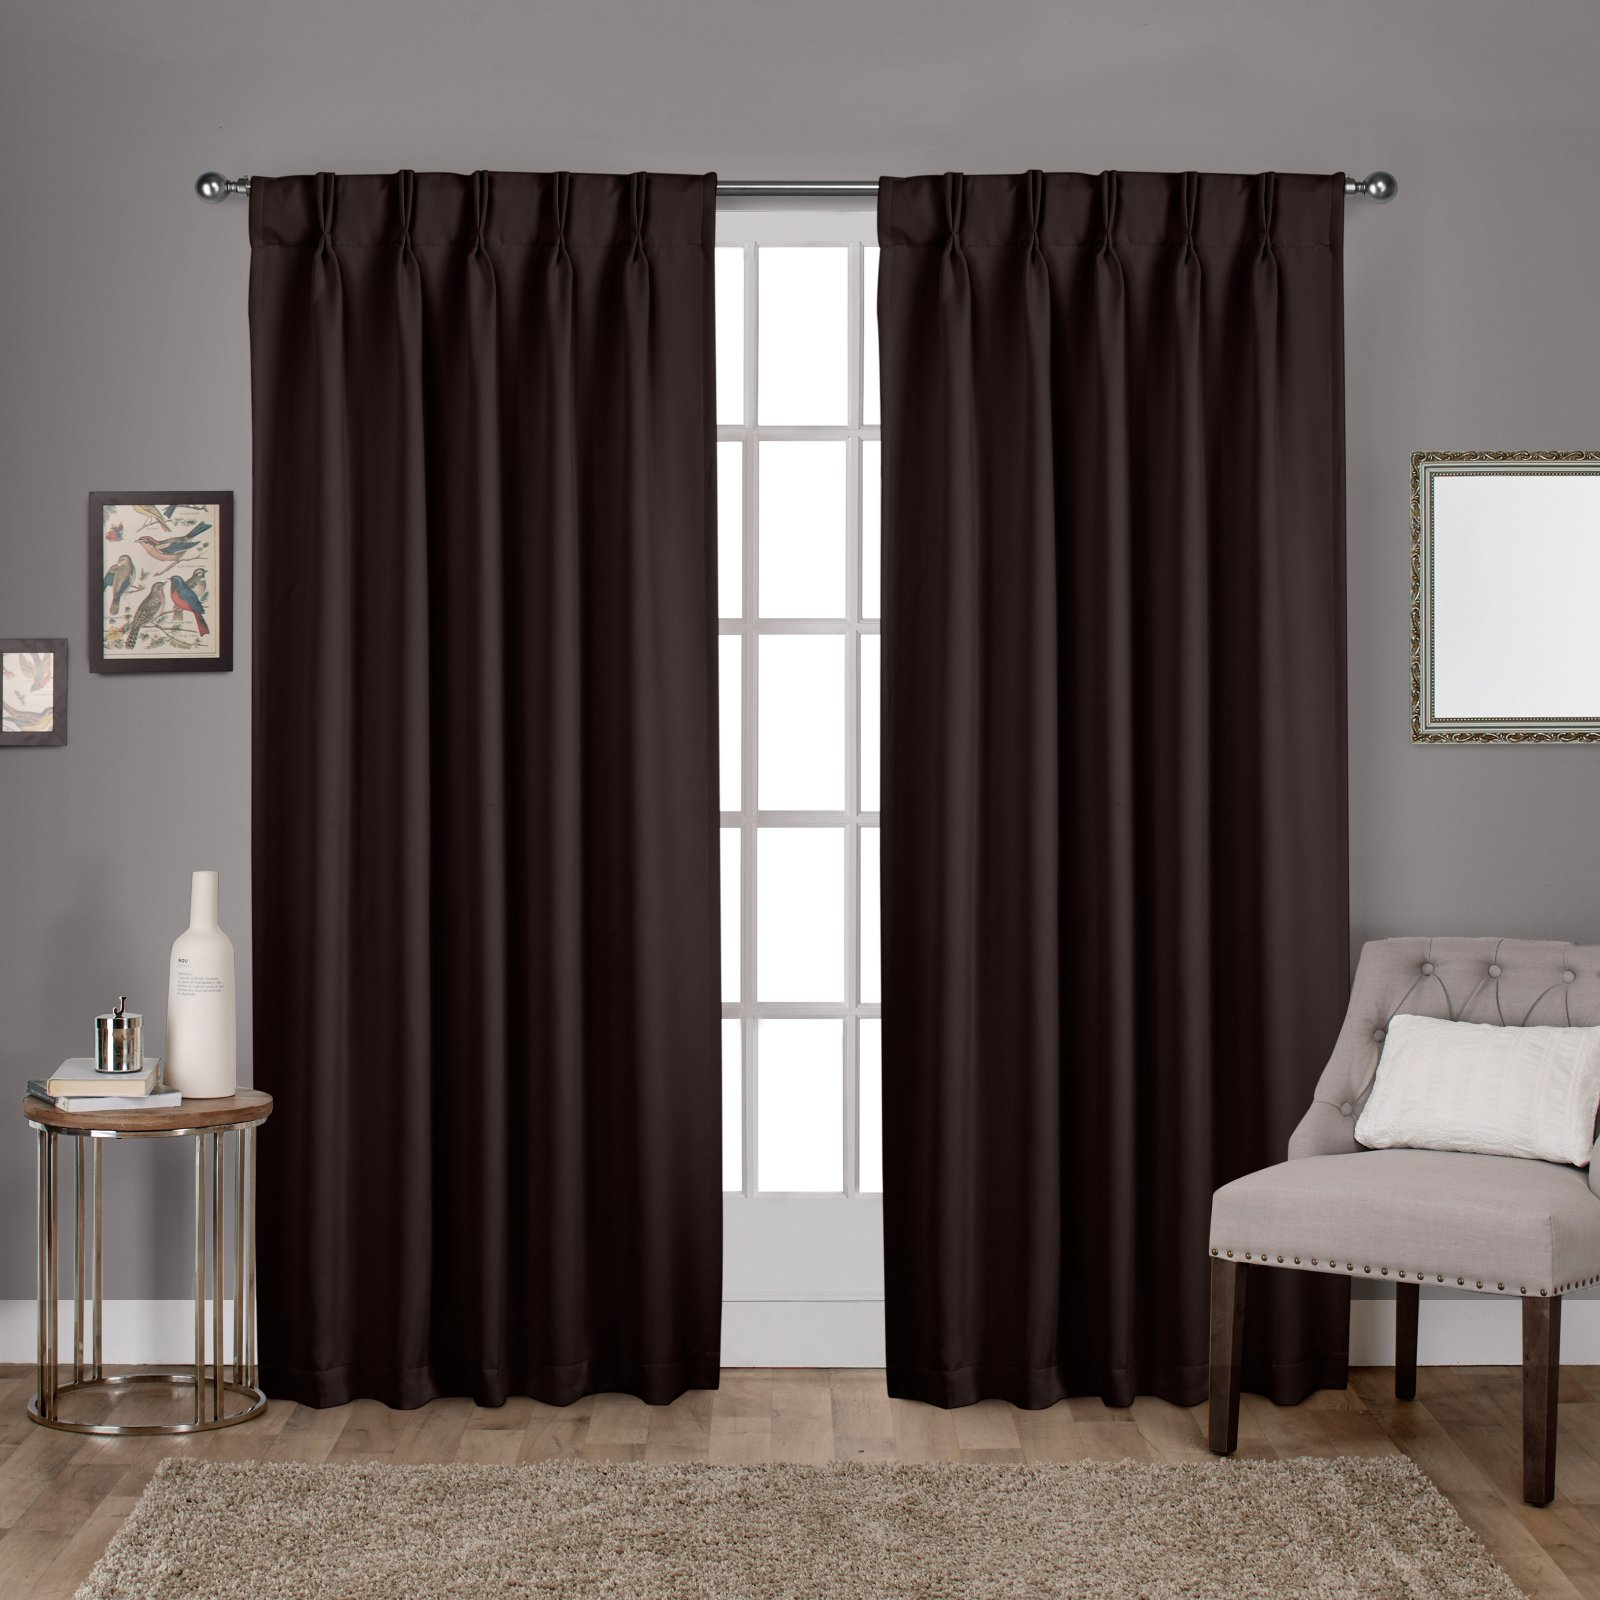 Exclusive Home Curtains 2 Pack Sateen Woven Blackout Pinch Pleat Curtain Panels Regarding Double Pinch Pleat Top Curtain Panel Pairs (View 11 of 20)